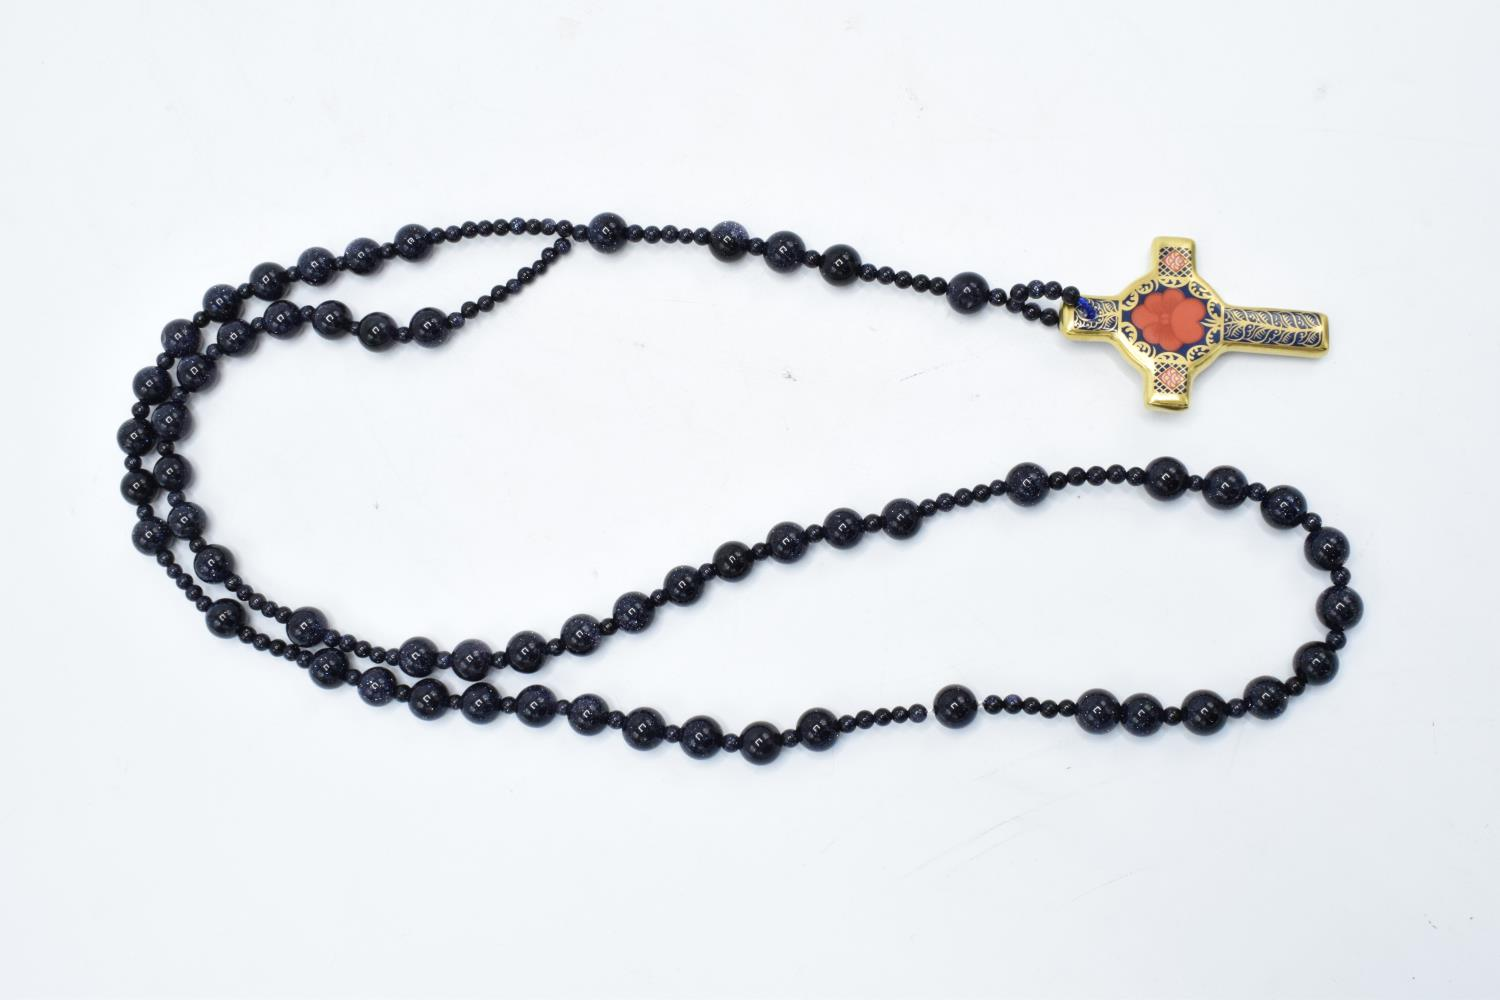 Royal Crown Derby Imari Rosary Cross pendant set on a beaded necklace, complete with box. As new. - Image 2 of 4